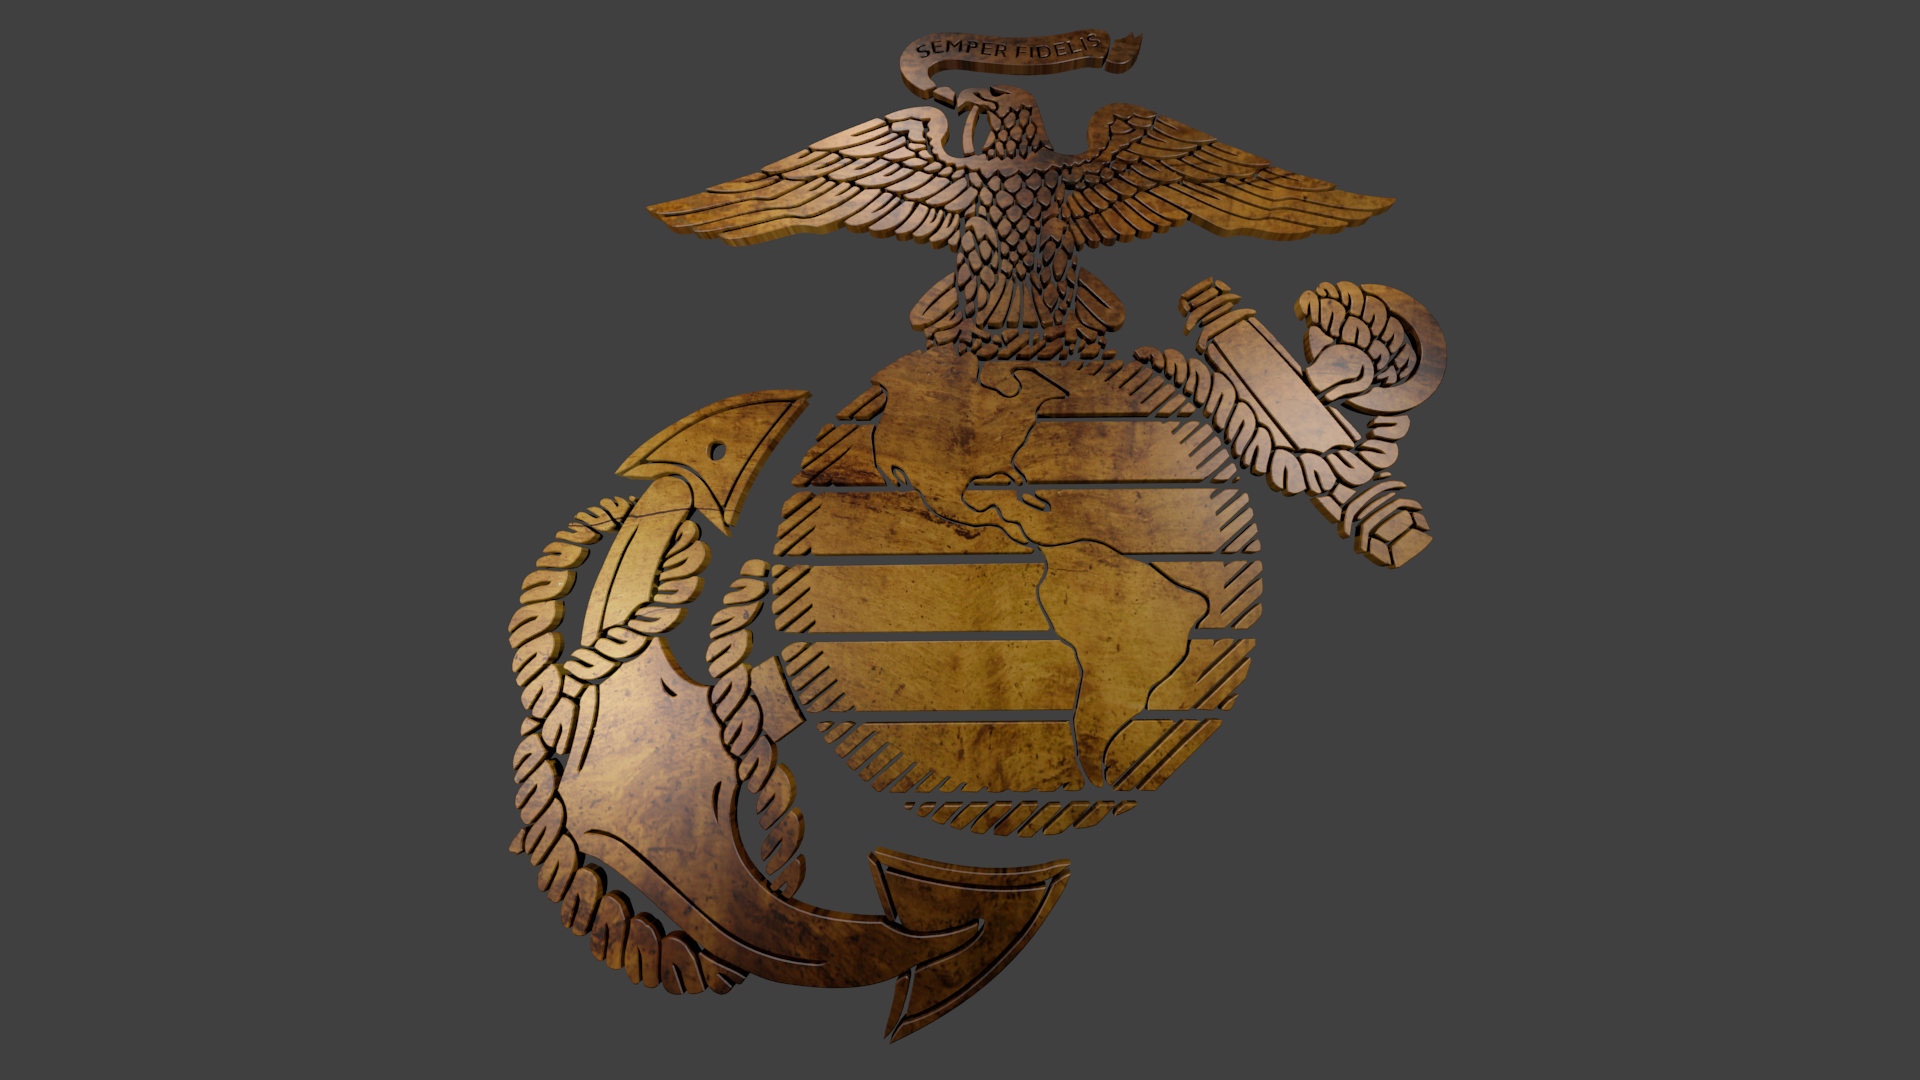 1920x1080 Marines USMC military r wallpaper |  | 46655 | WallpaperUP